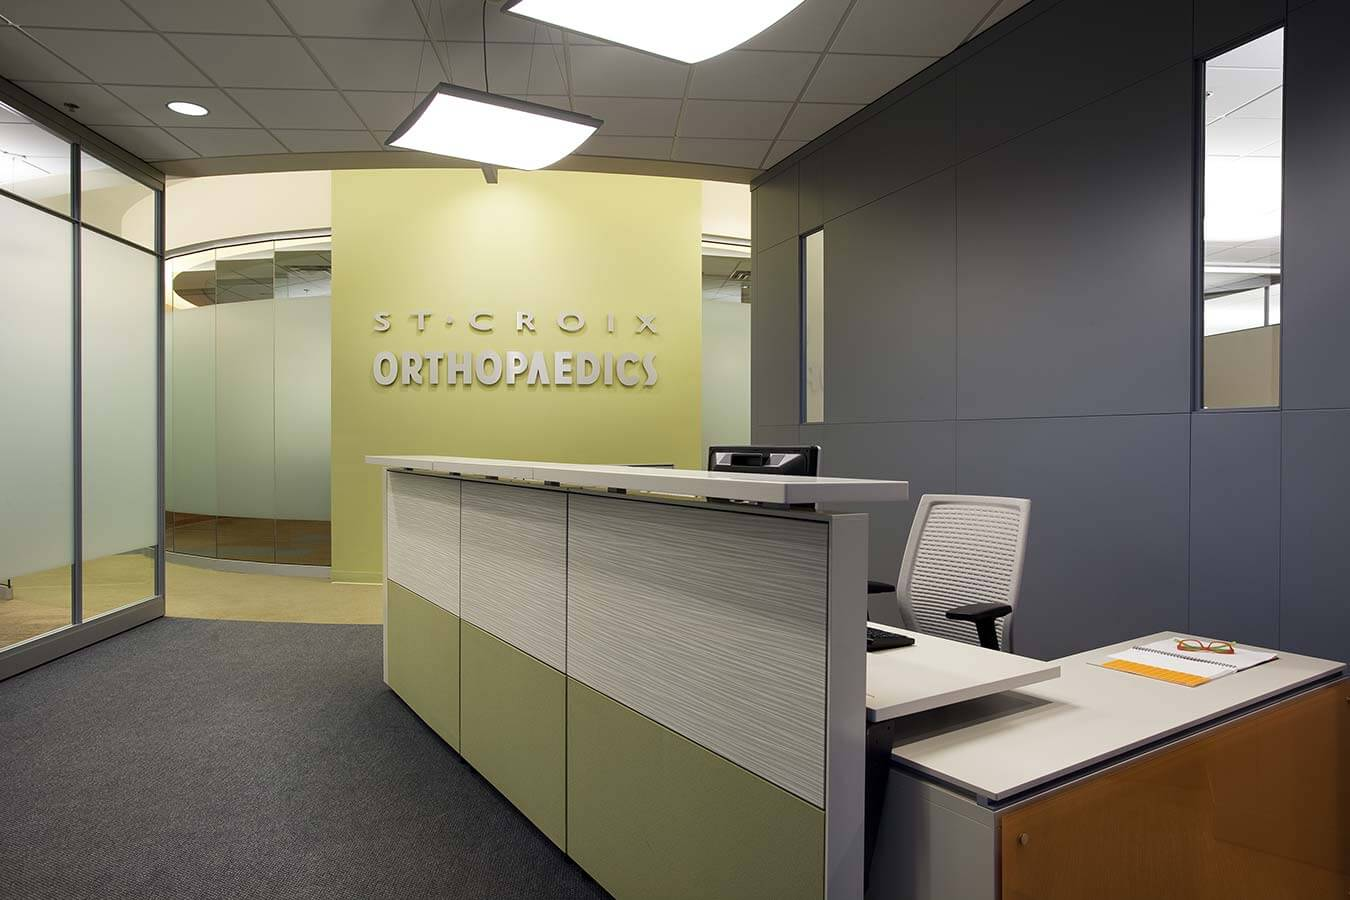 Mohagen Hansen | Architecture | Interior Design | Minneapolis |St. Croix Orthopaedics